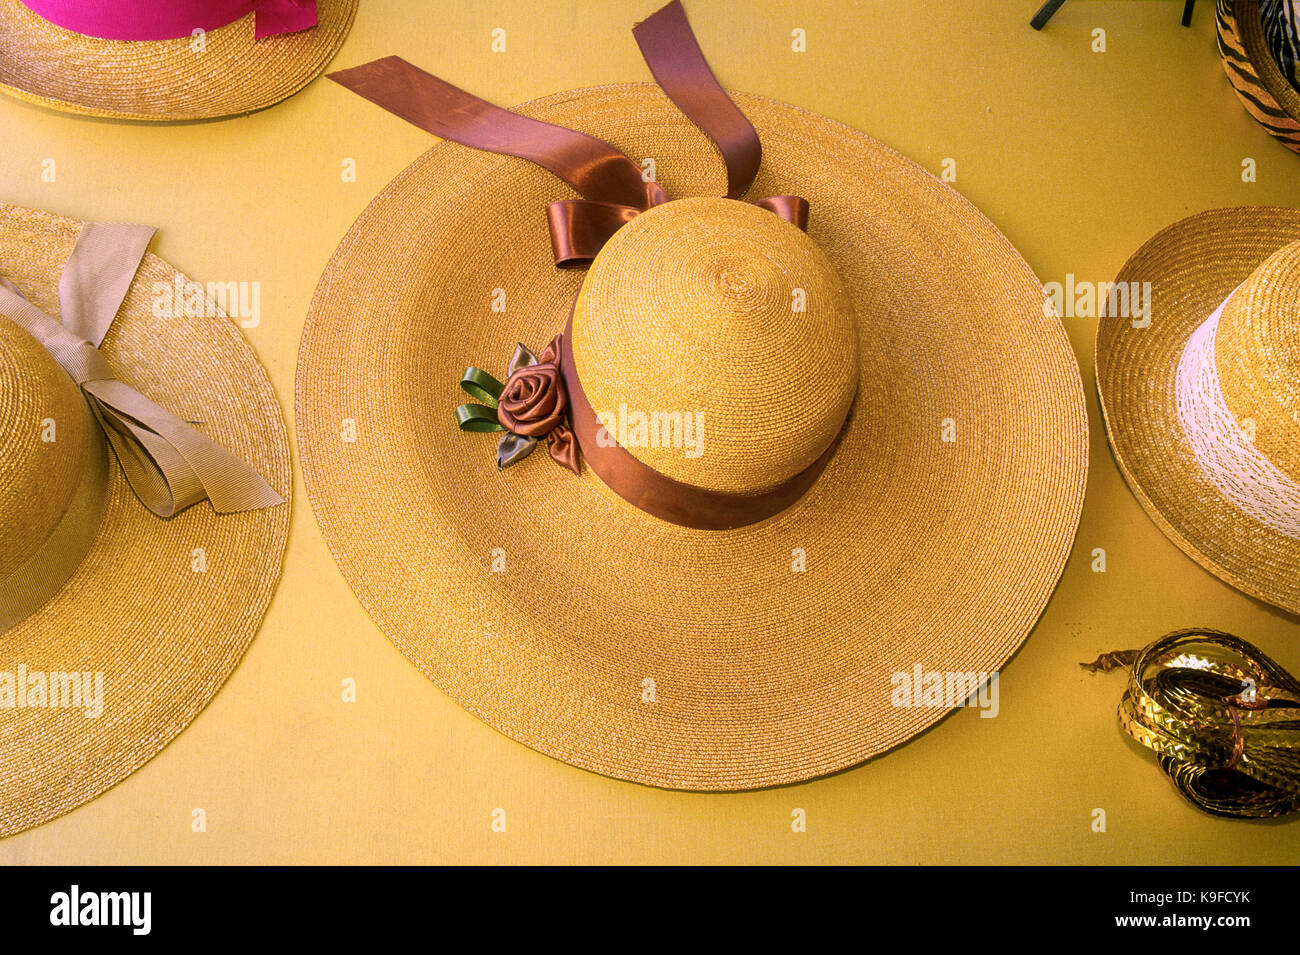 Italy Marche Montappone hats - Stock Image